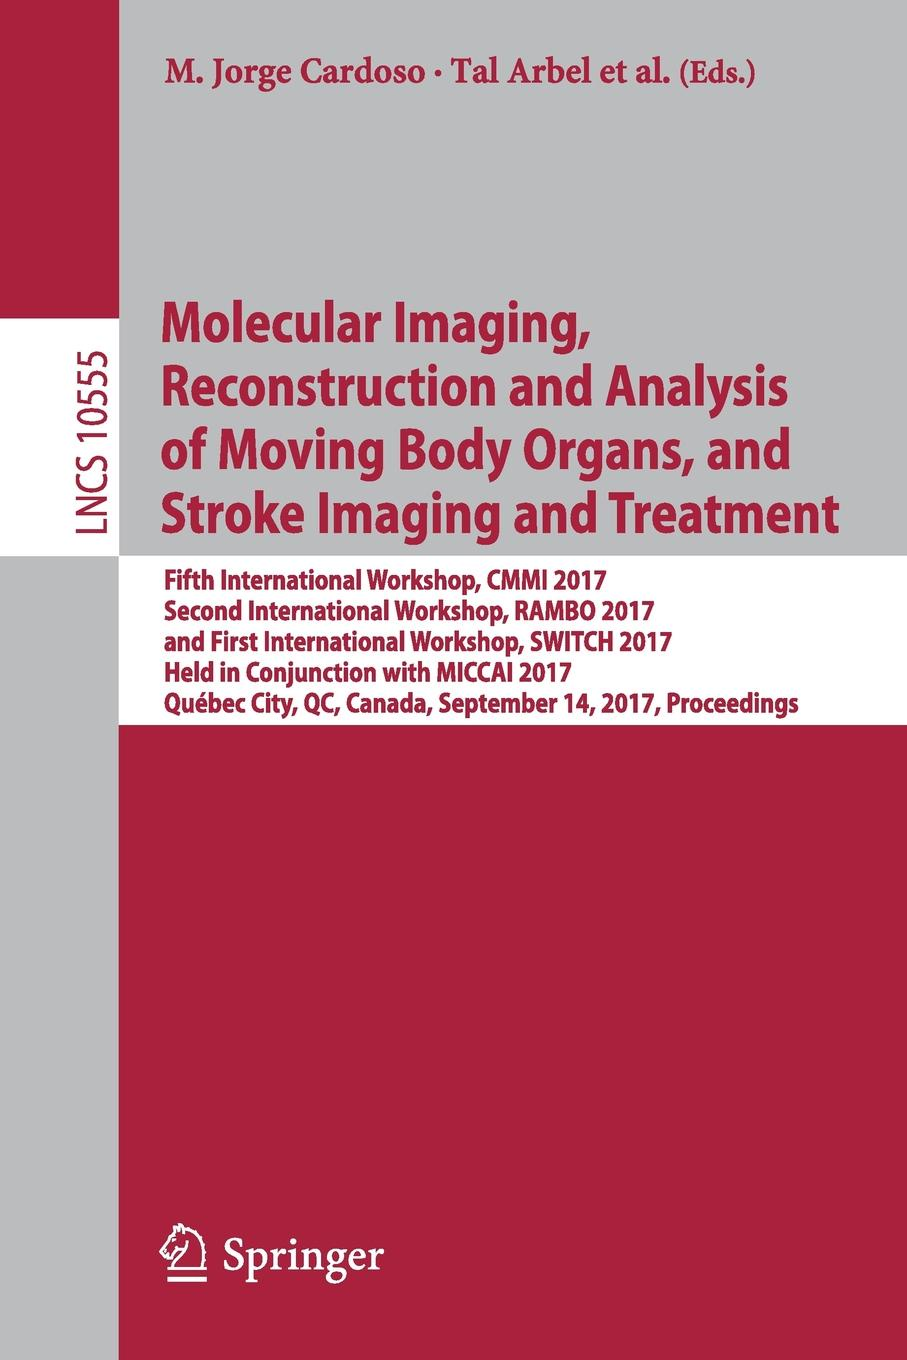 Molecular Imaging, Reconstruction and Analysis of Moving Body Organs, and Stroke Imaging and Treatment. Fifth International Workshop, CMMI 2017, Second International Workshop, RAMBO 2017, and First International Workshop, SWITCH 2017, Held in Conj... devil s workshop